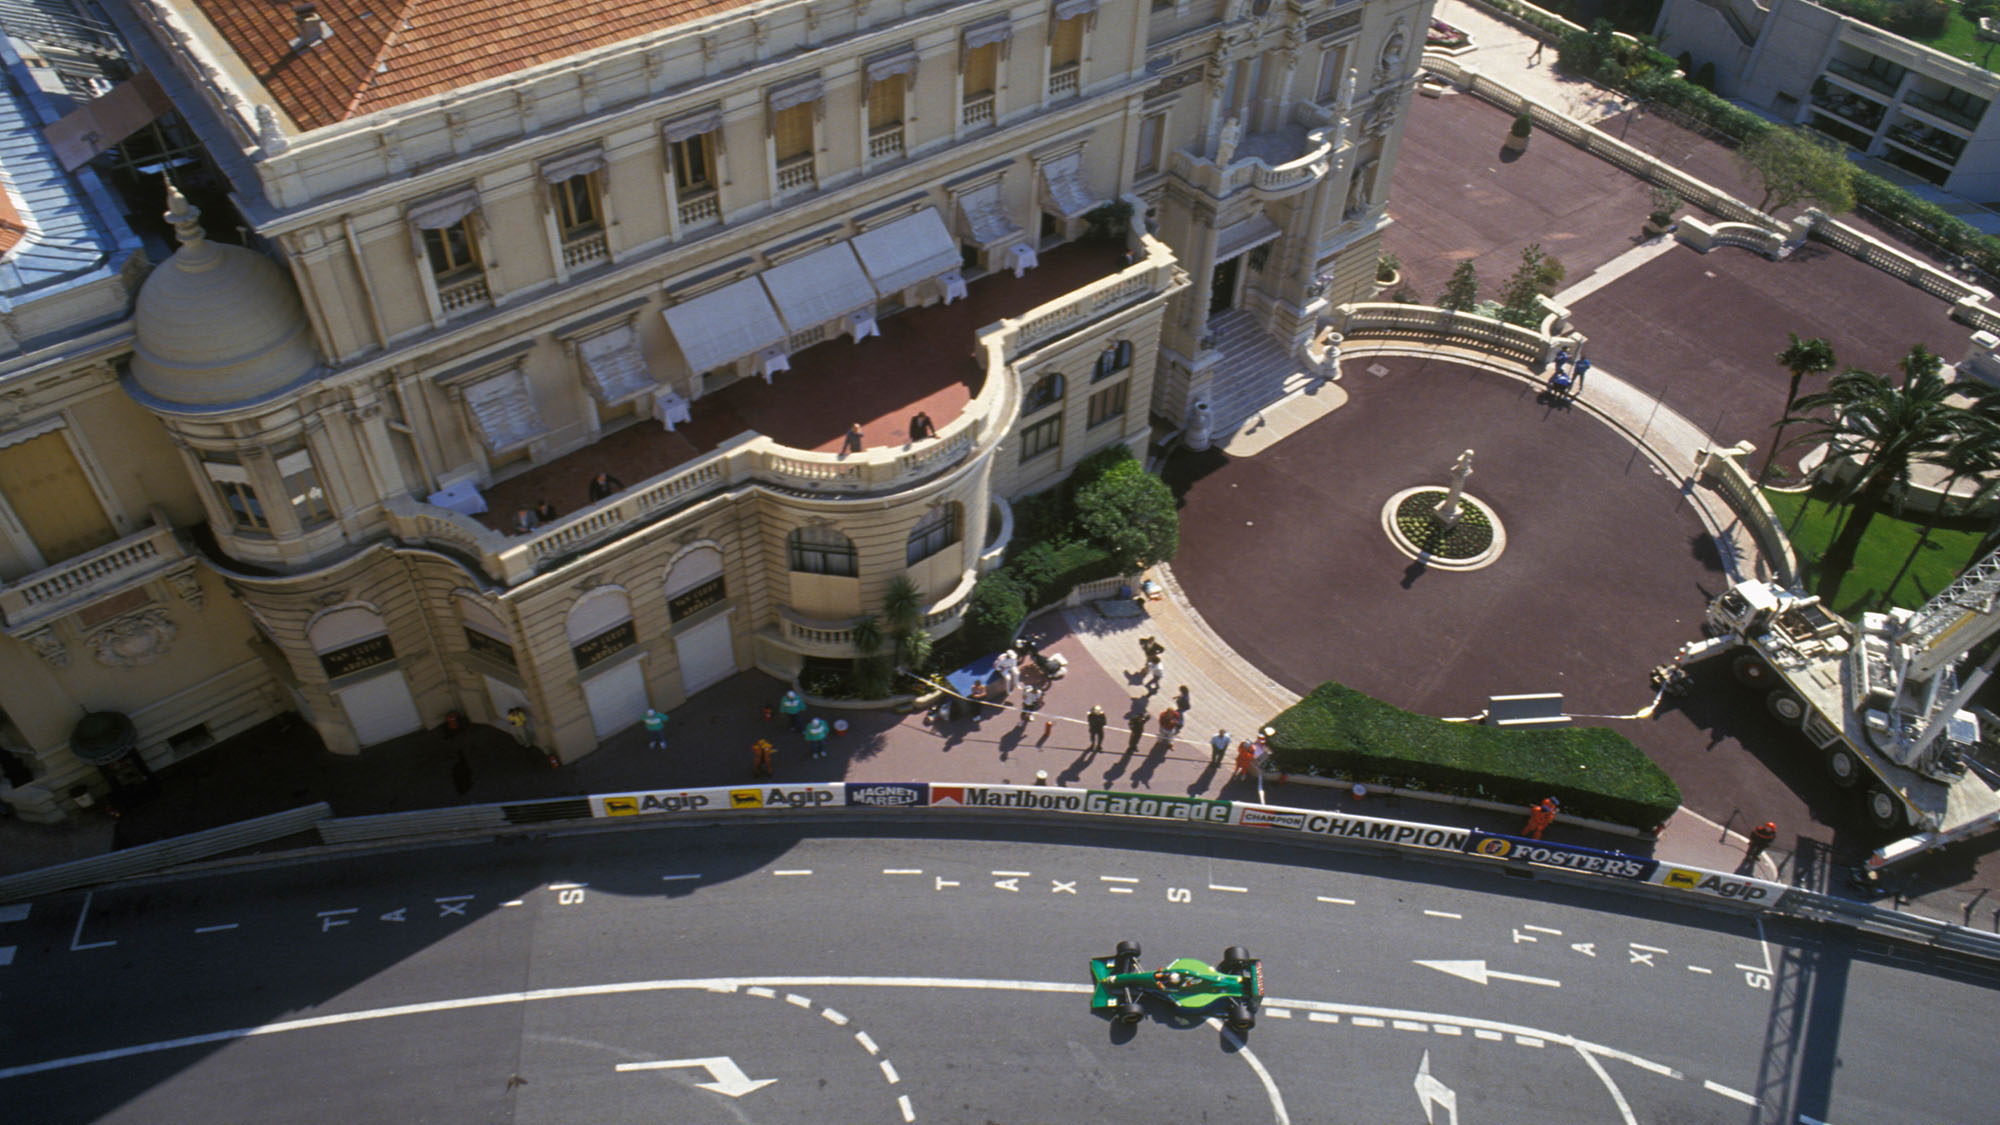 Andrea de Cesaris (Jordan-Ford) seen from above with the Casino in the background durng the 1991 Monaco Grand Prix. Photo: Grand Prix Photo / Dominique Leroy